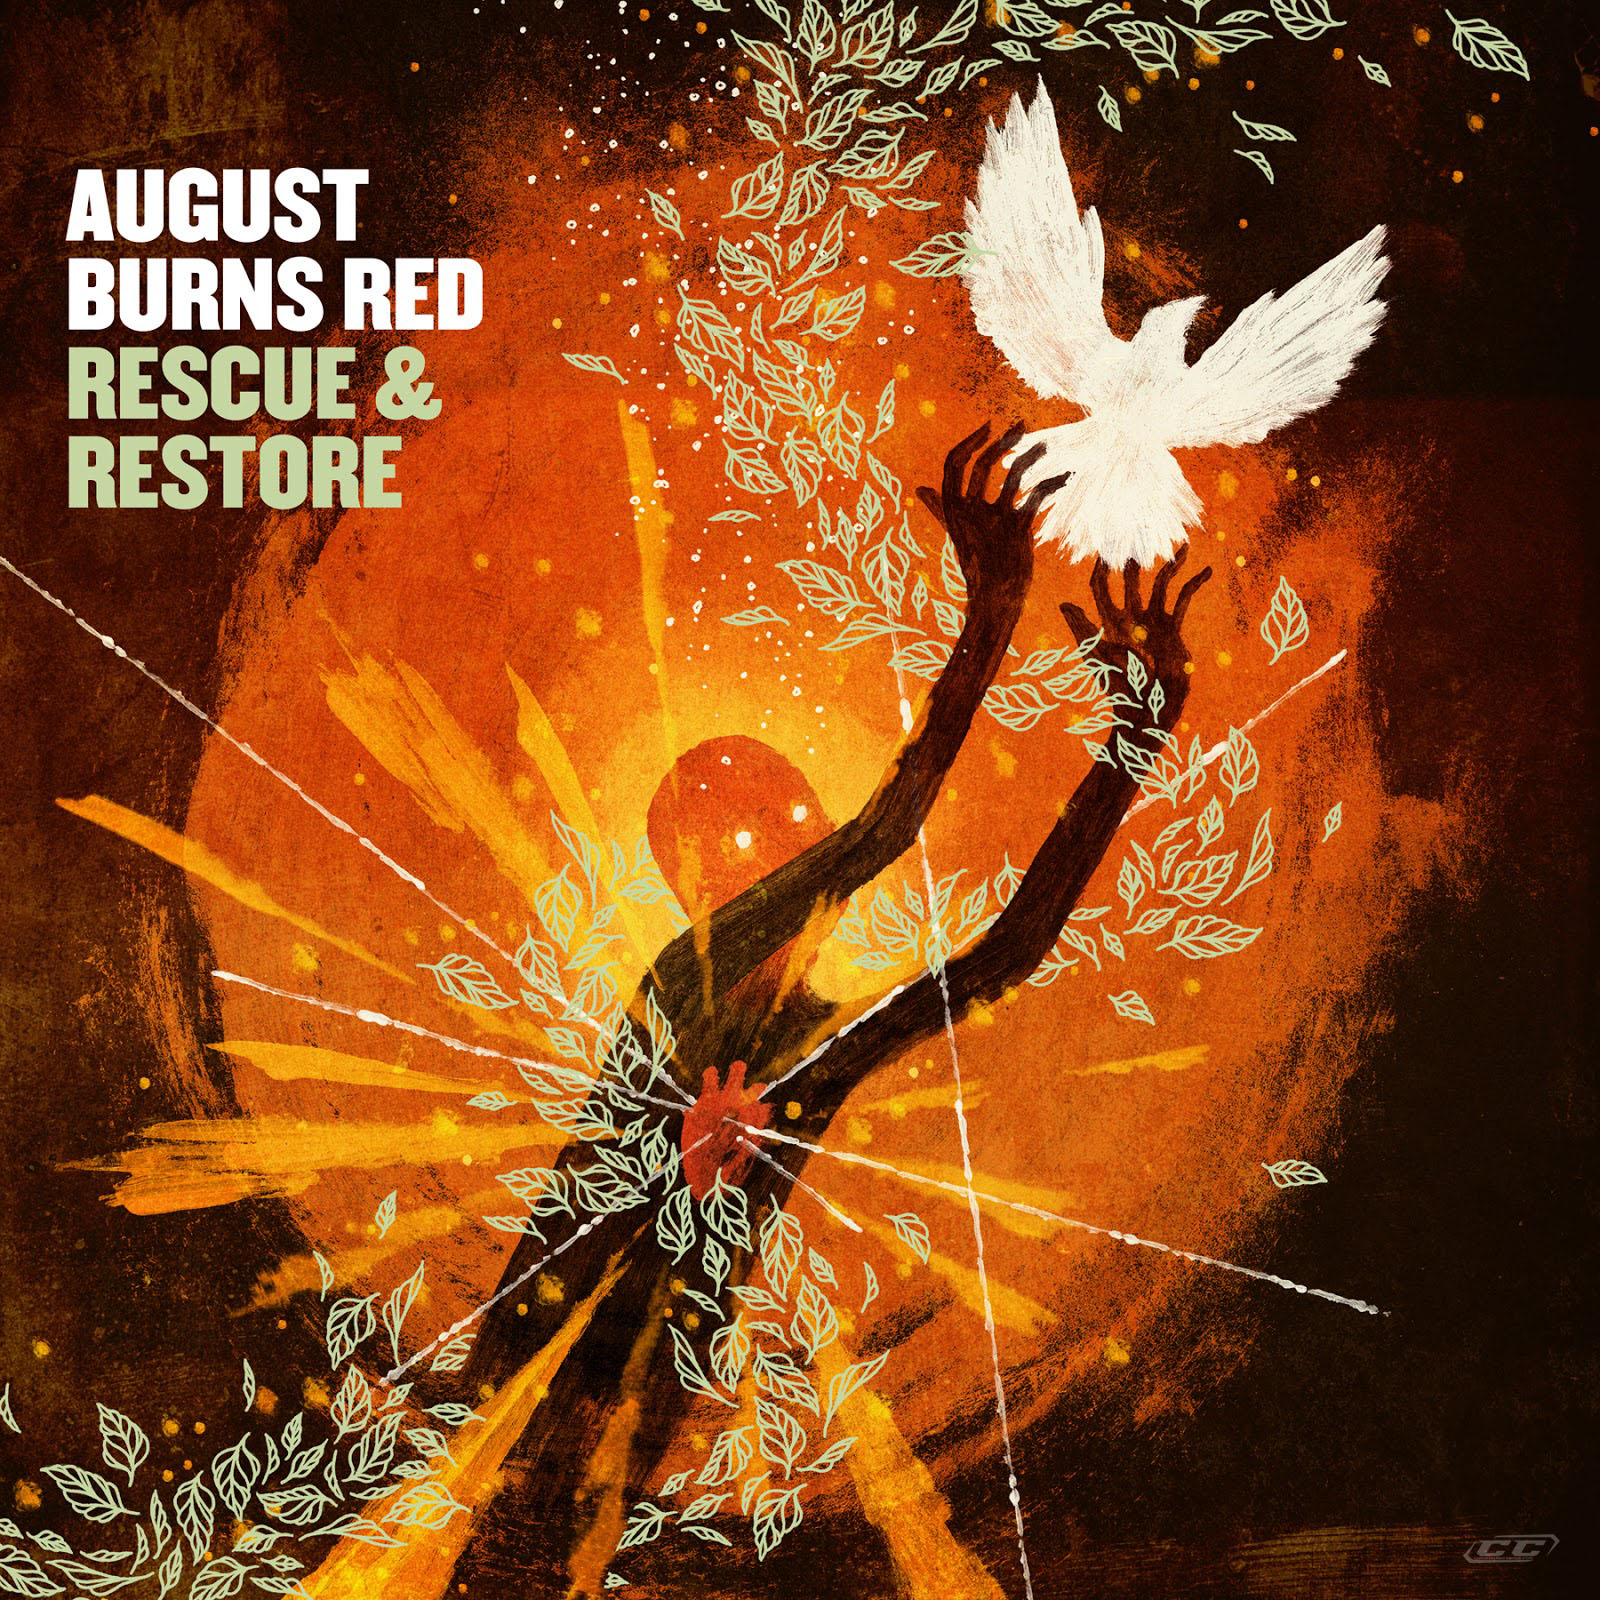 August-Burns-Red--Rescue-&-Restore-2013-English-Christian-Album-Download